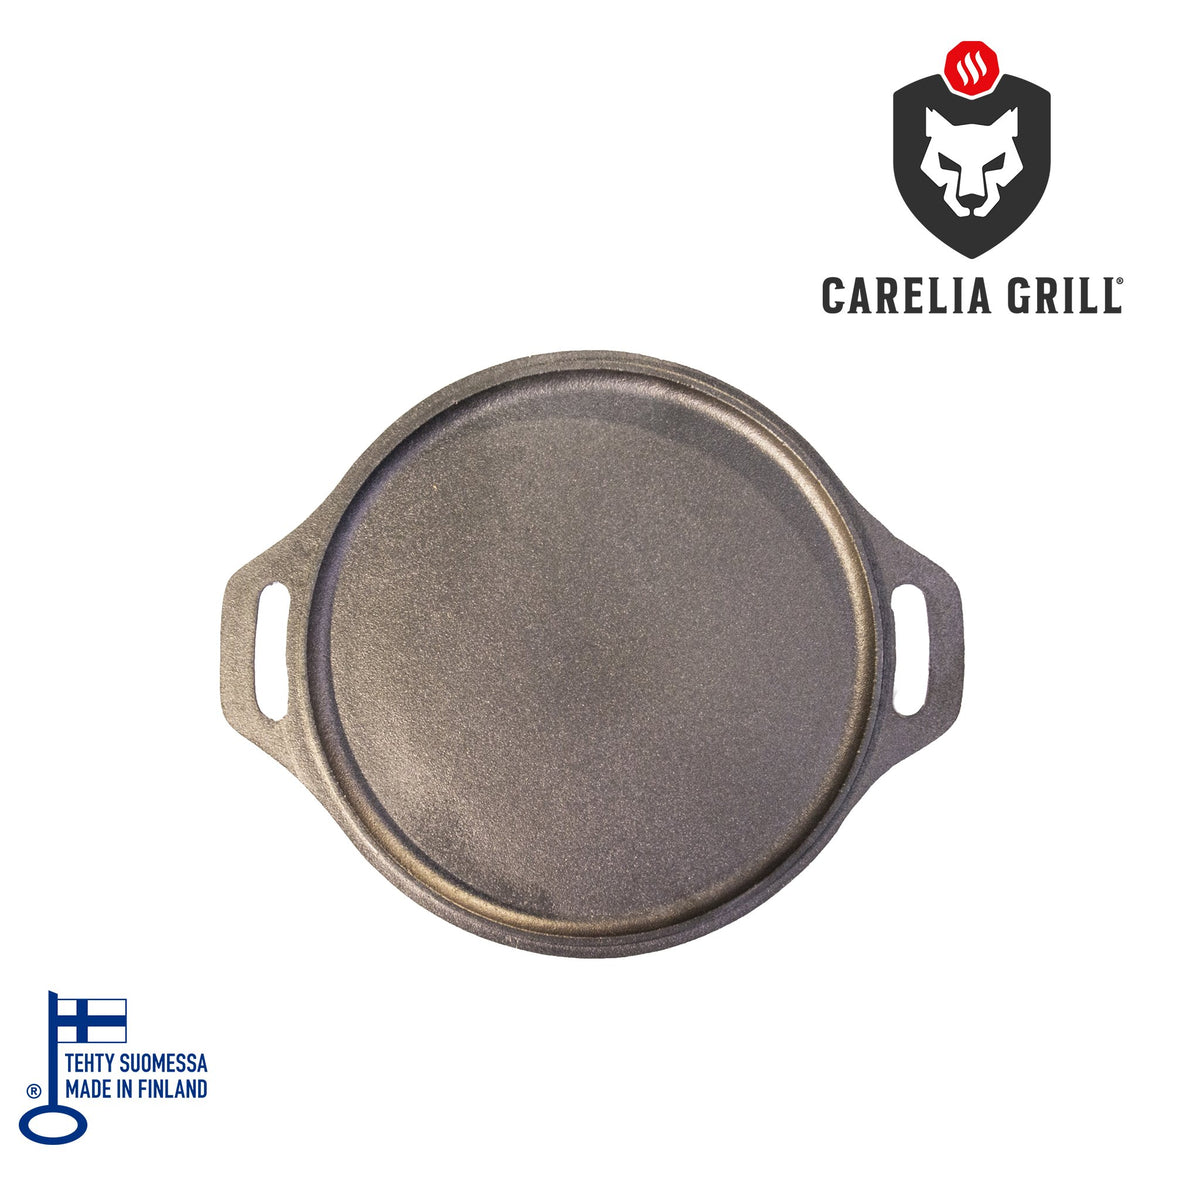 CARELIA GRILL® PAN MADE OF CAST IRON